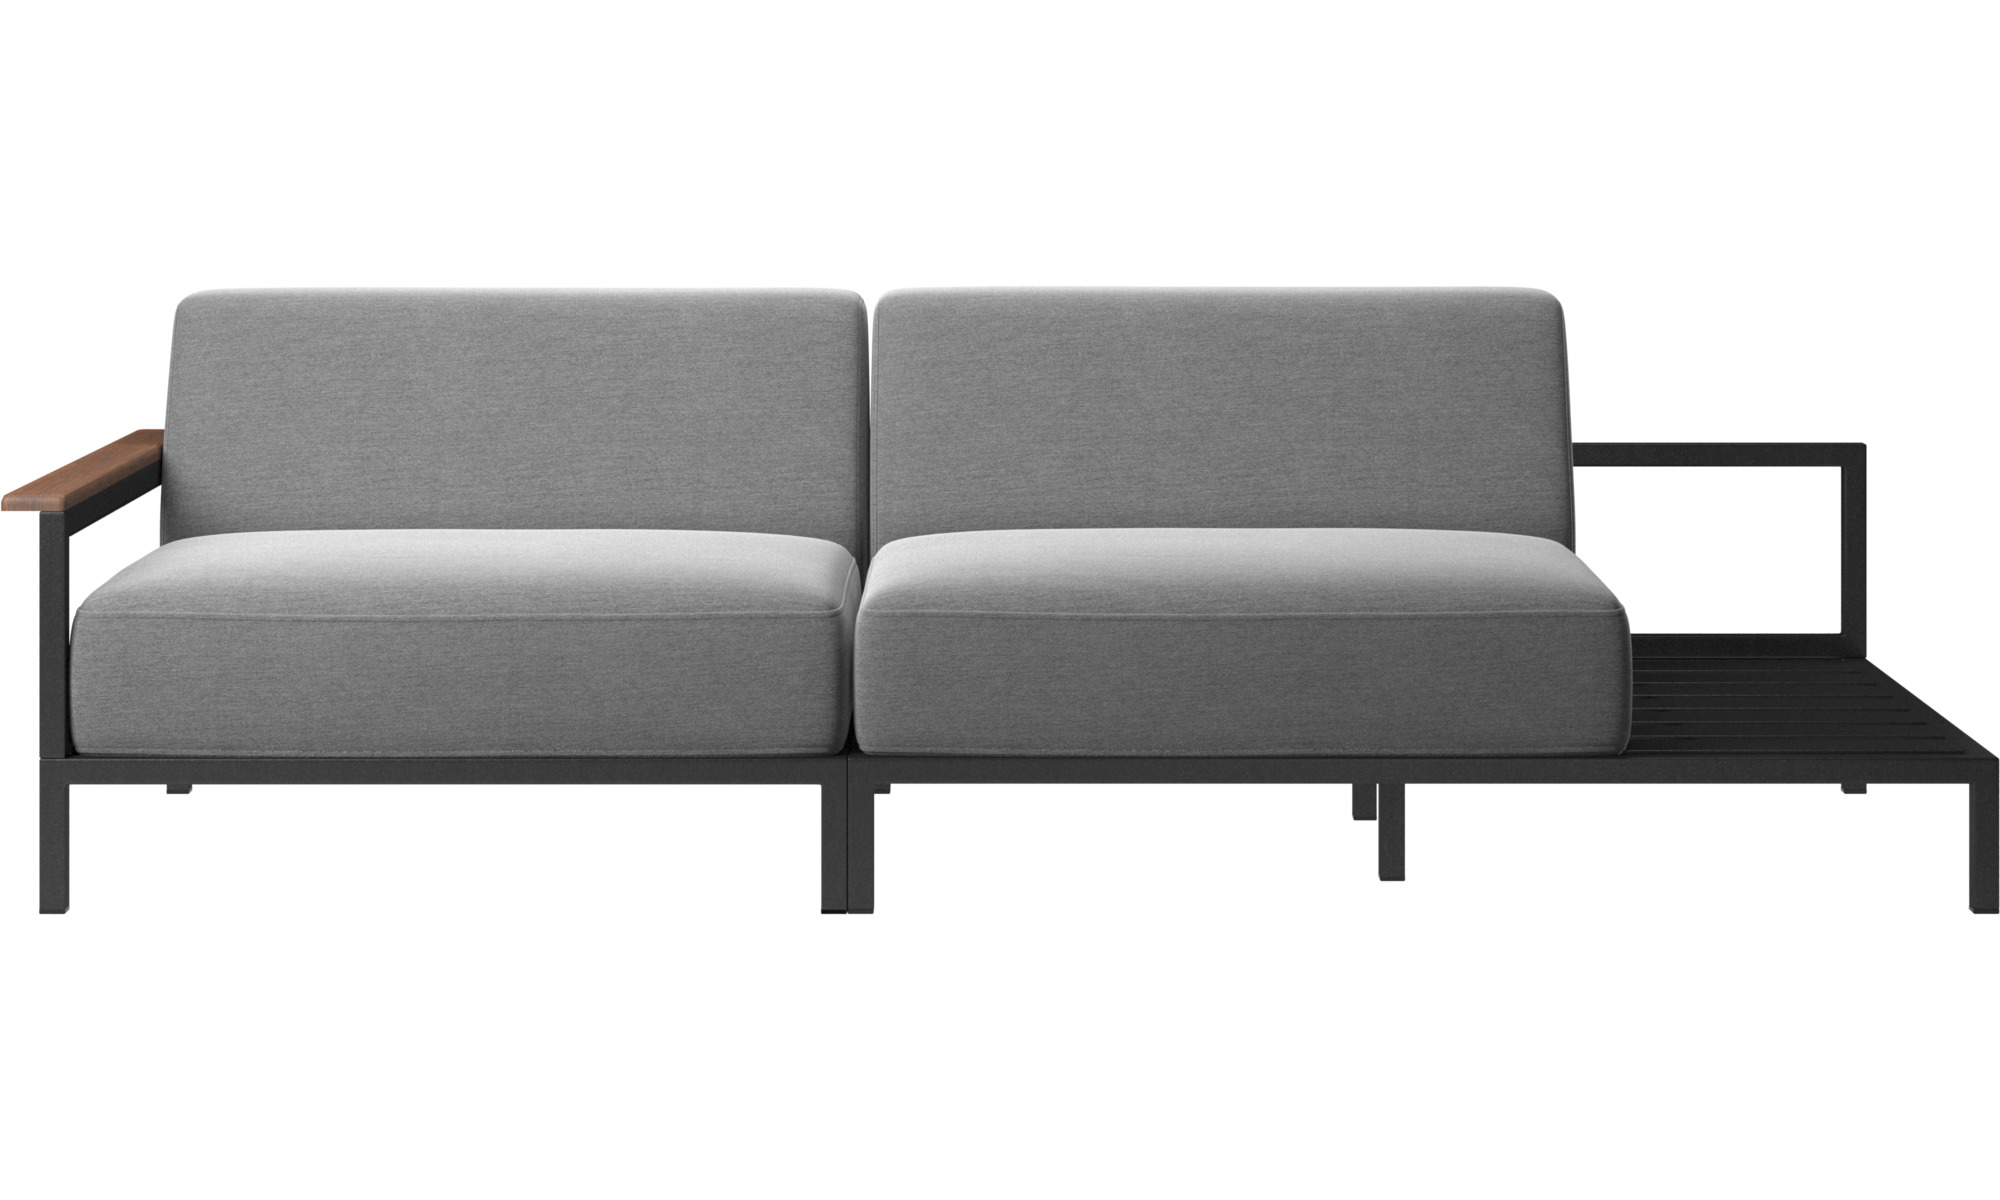 Outdoor sofas rome outdoor sofa boconcept for Sofa outdoor